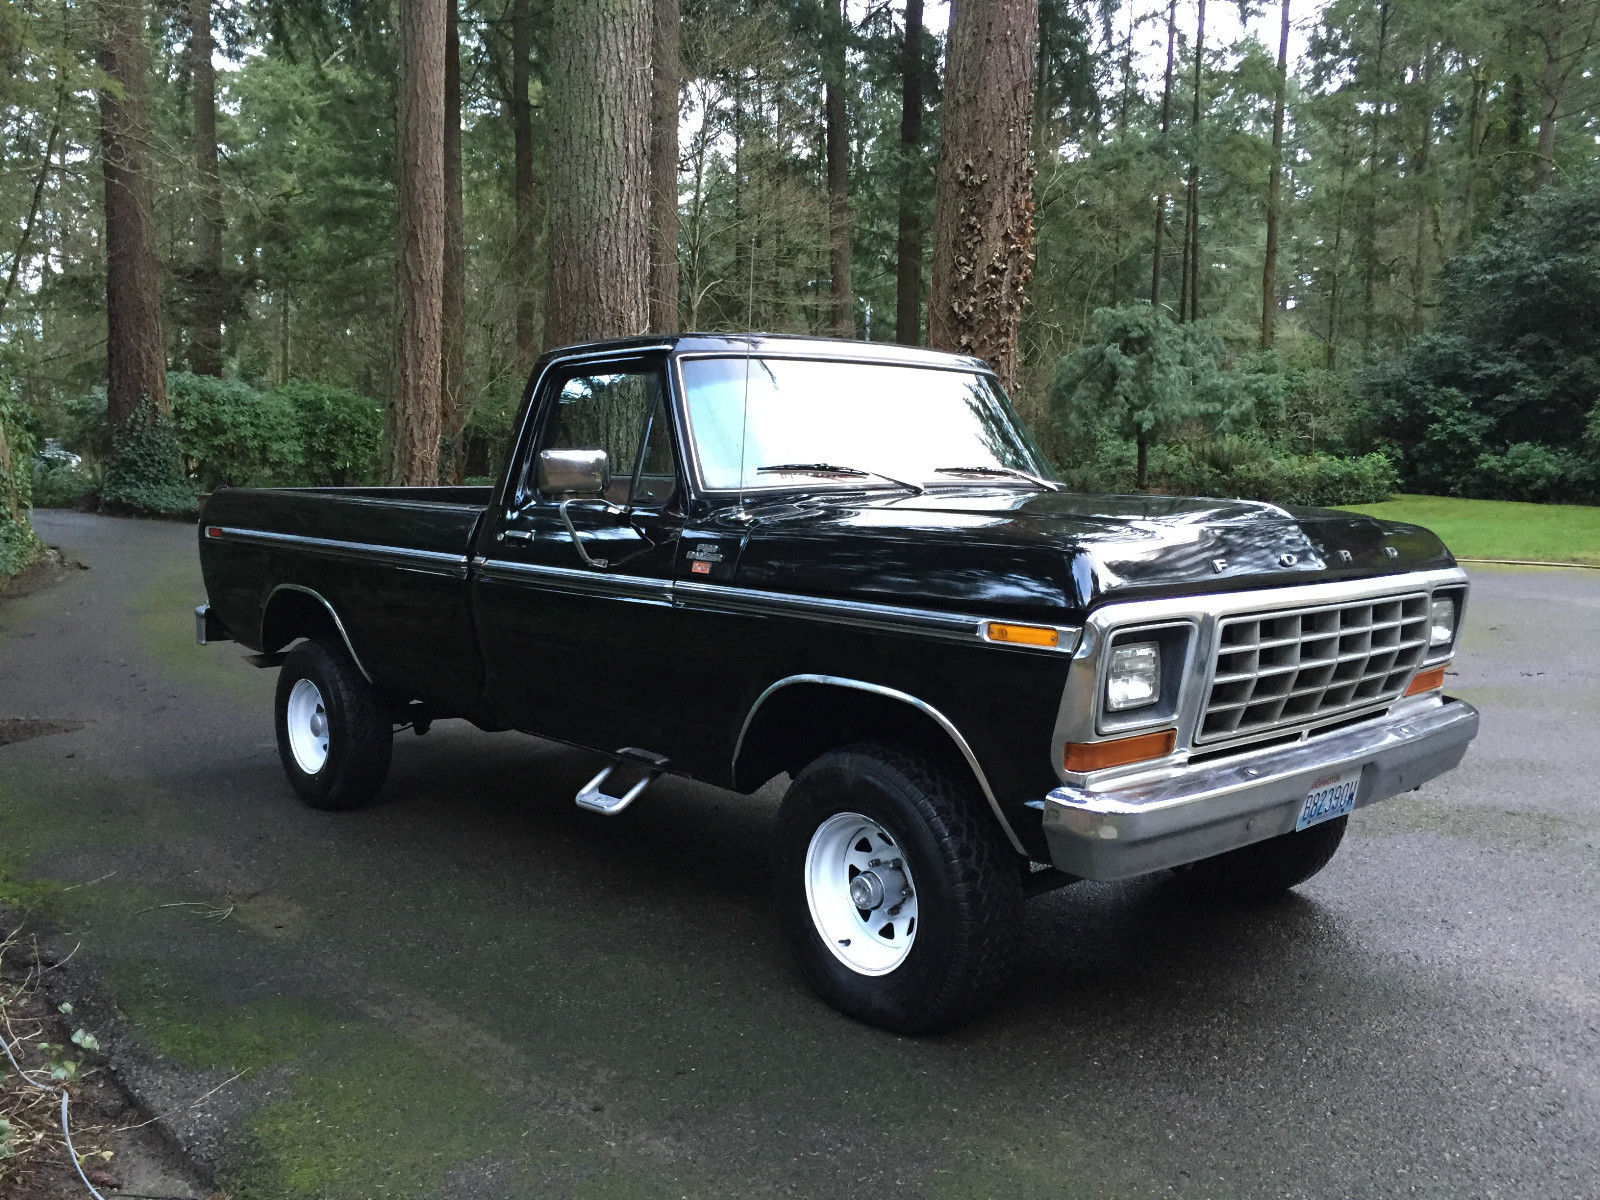 1978 ford f150 ranger xlt 4x4 amazing original condition 100 rust free classic ford f 150. Black Bedroom Furniture Sets. Home Design Ideas